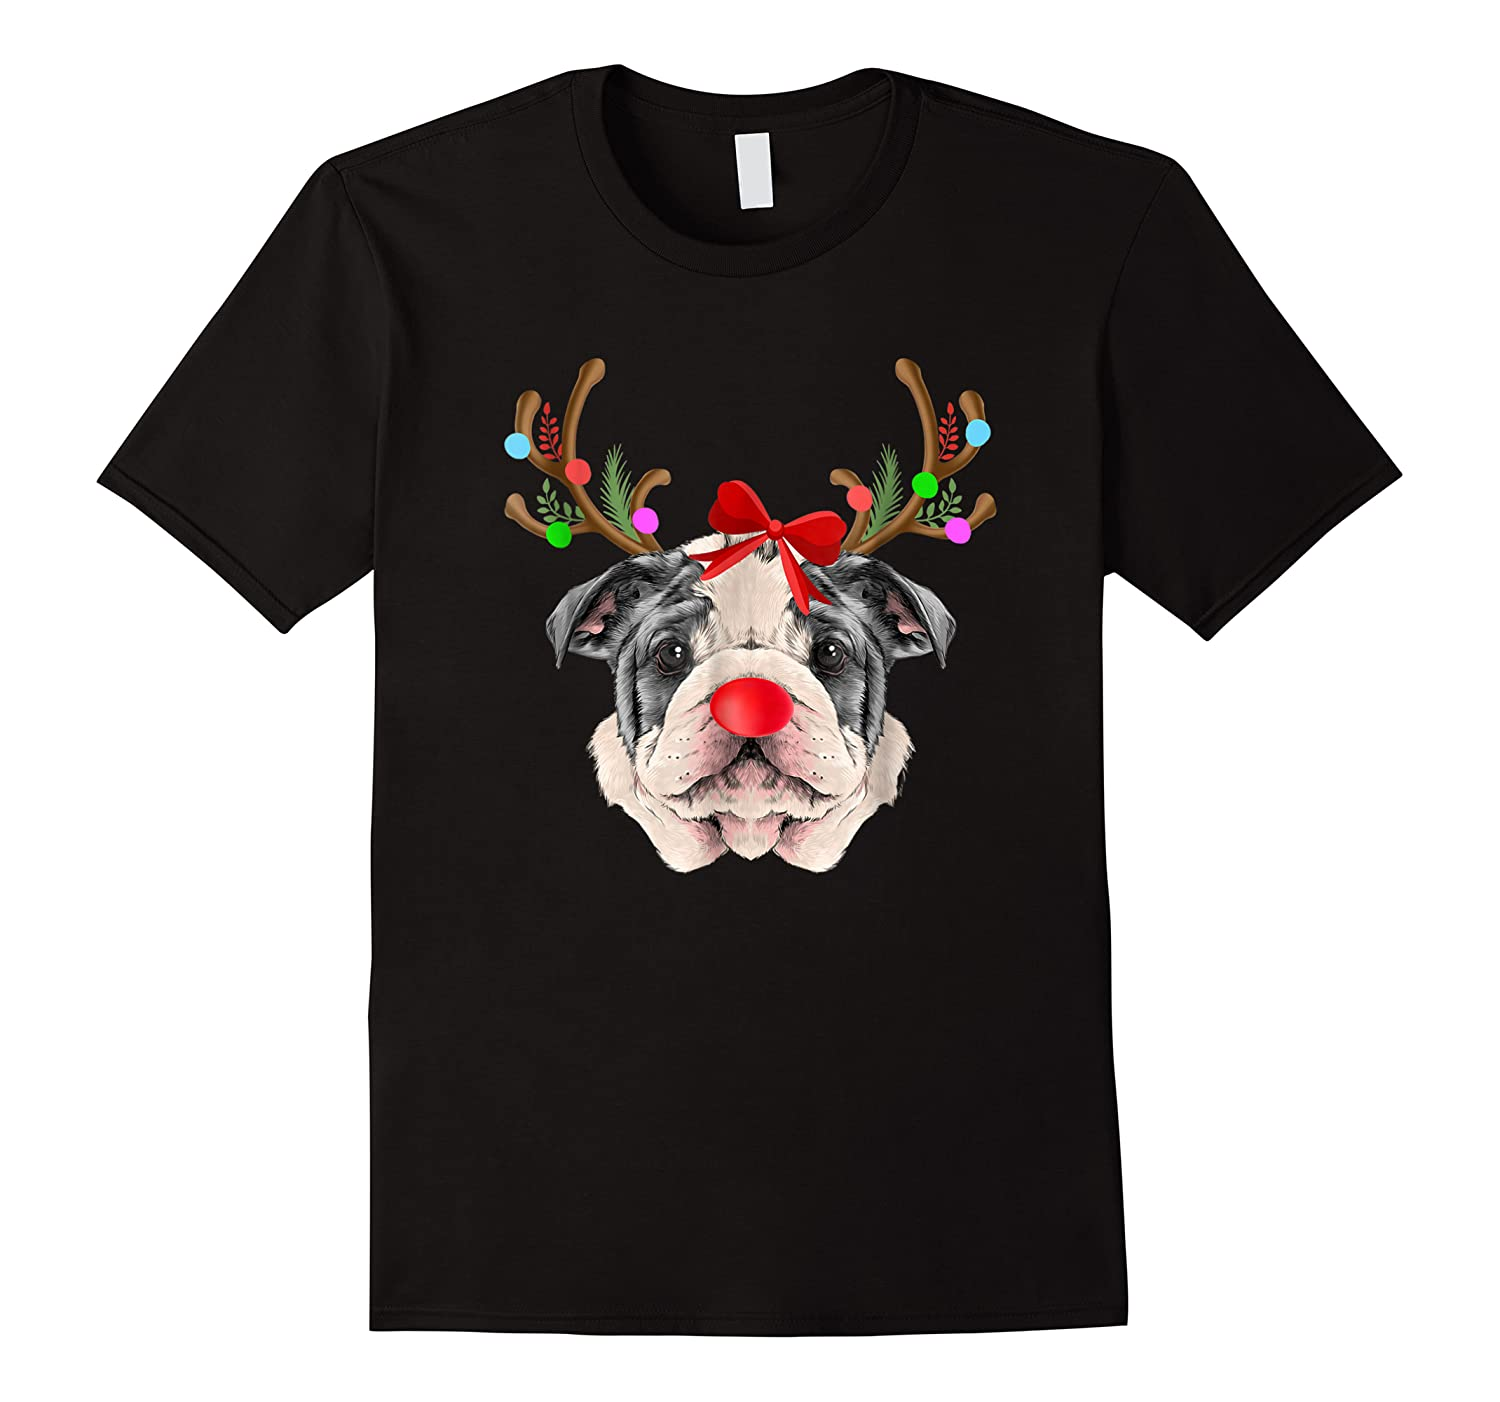 Funny Bulldogs With Antlers Light Christmas Shirts